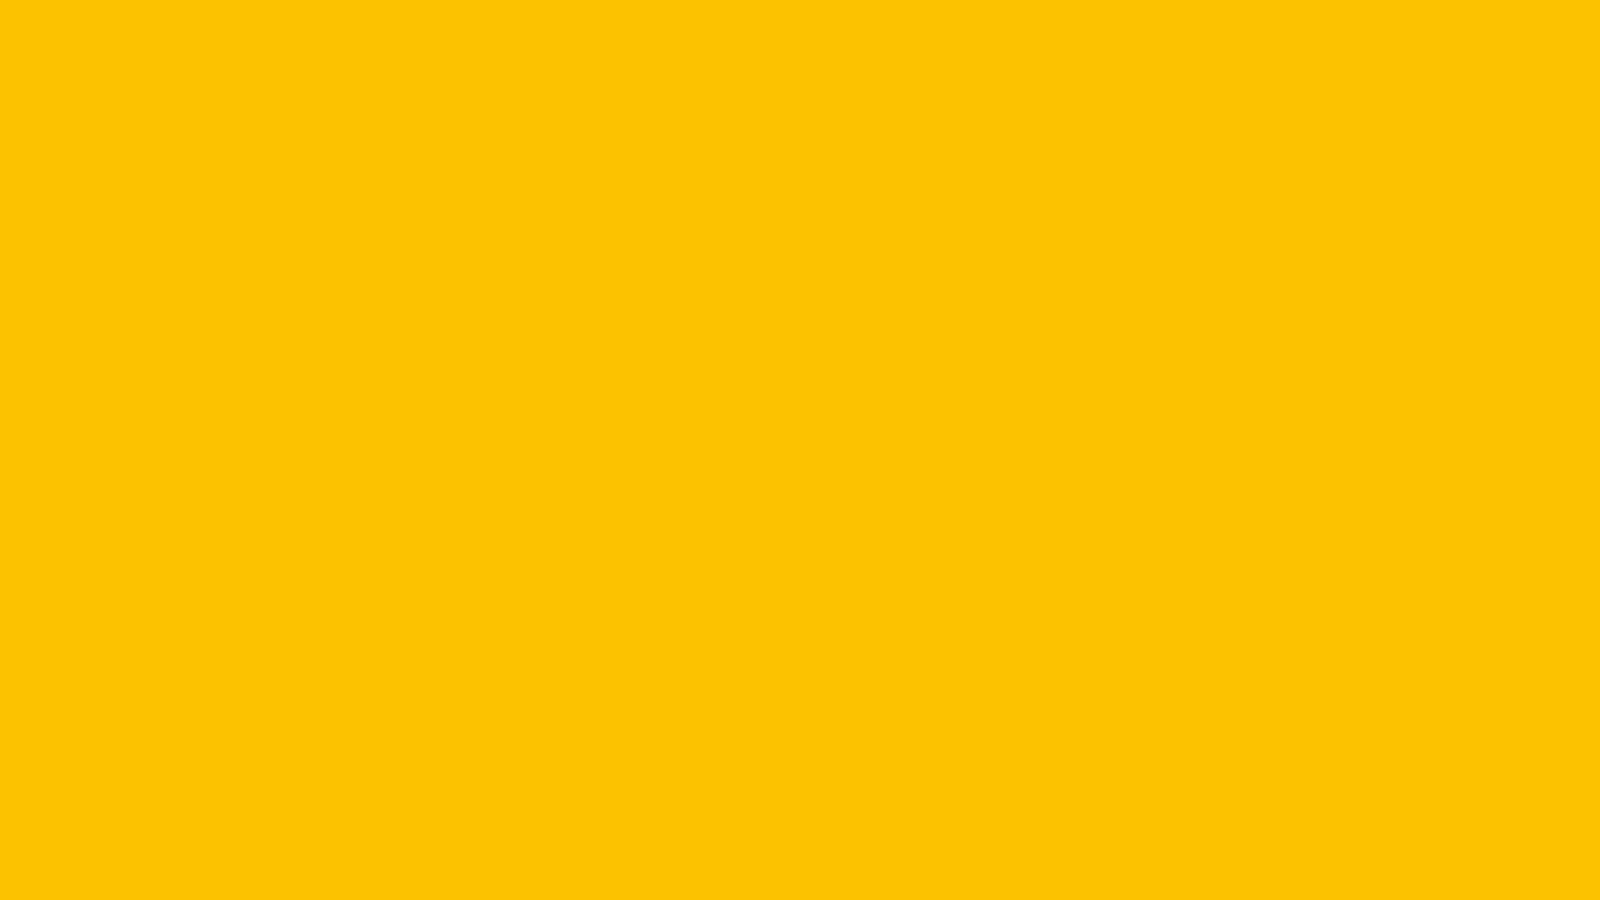 1600x900 Golden Poppy Solid Color Background